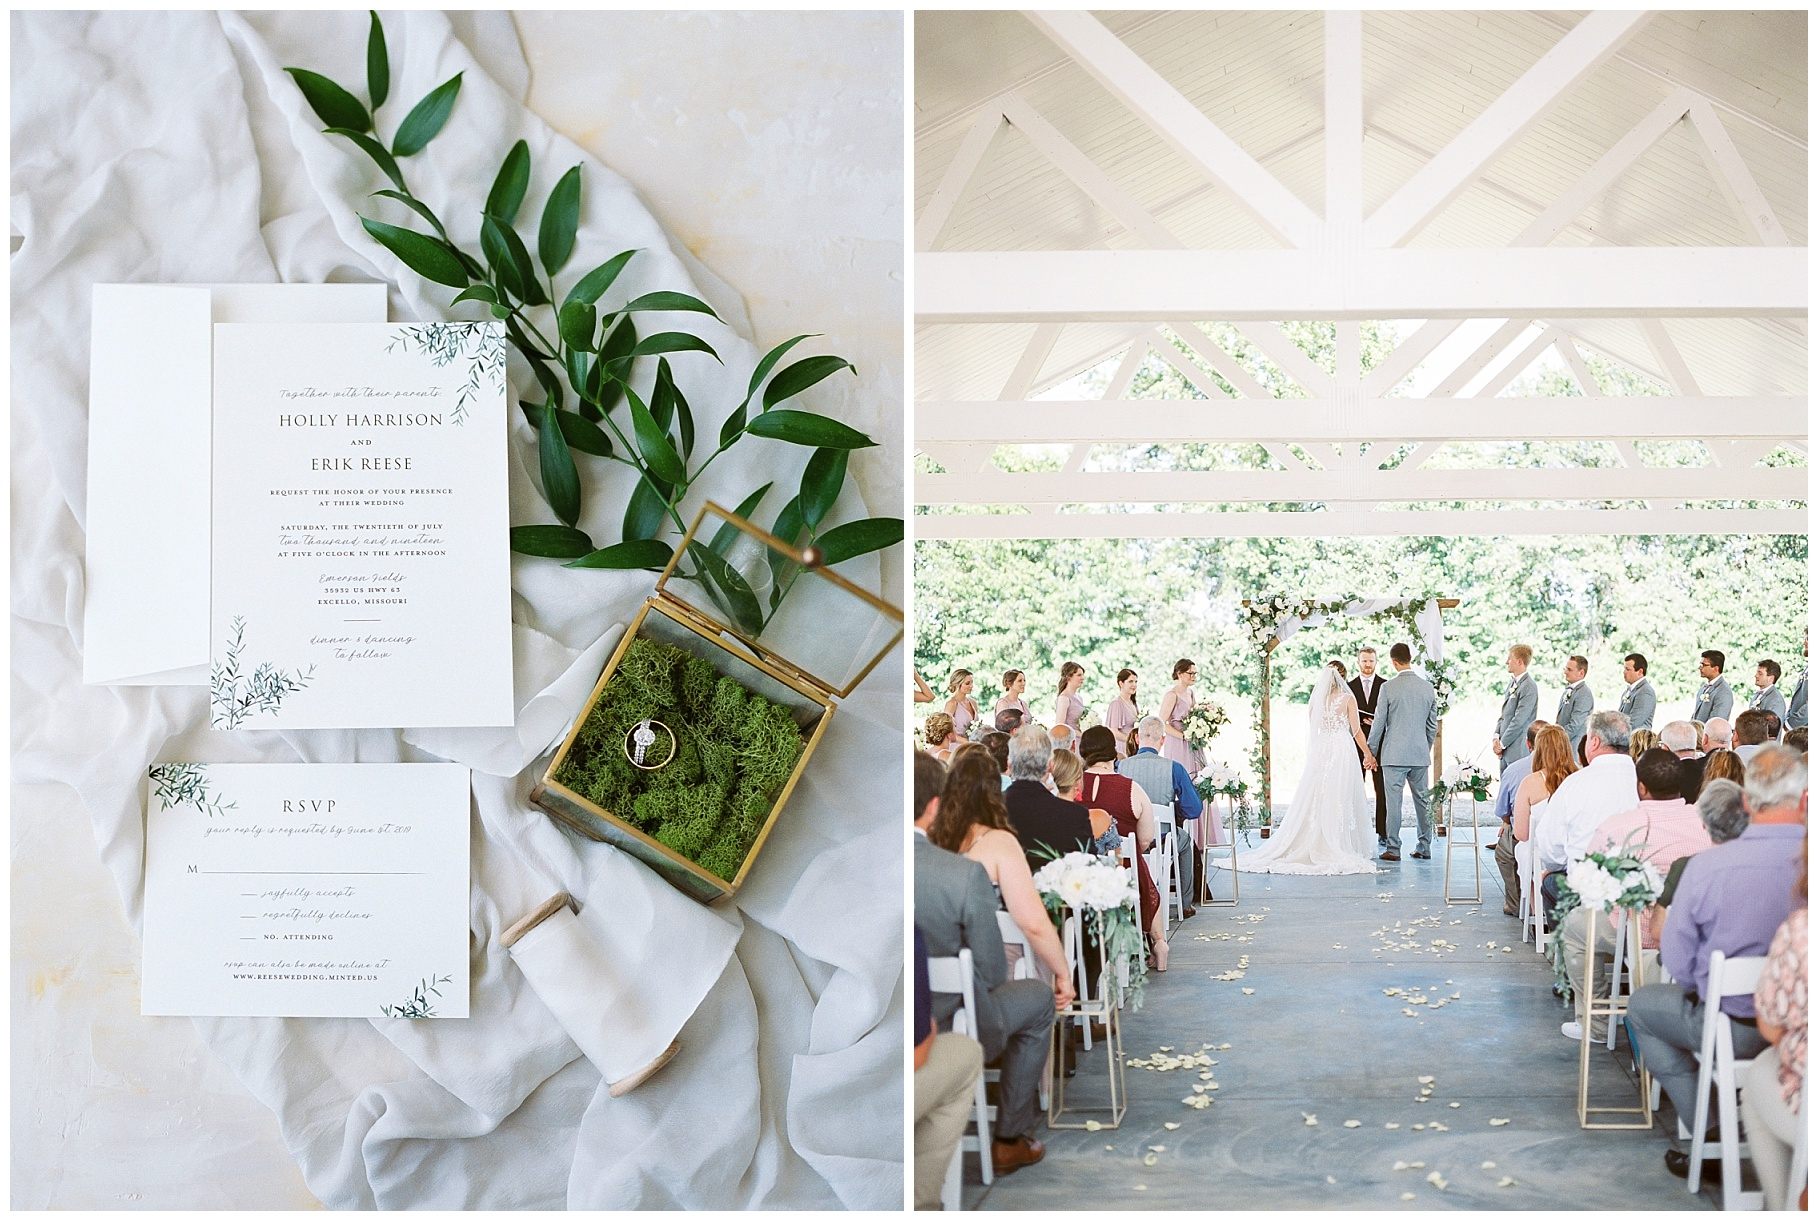 Classic Quartz, White, and Deep Green Wedding at Emerson Fields by Kelsi Kliethermes Photography Best Columbia Missouri and Maui Hawaii Wedding Photographer_0067.jpg